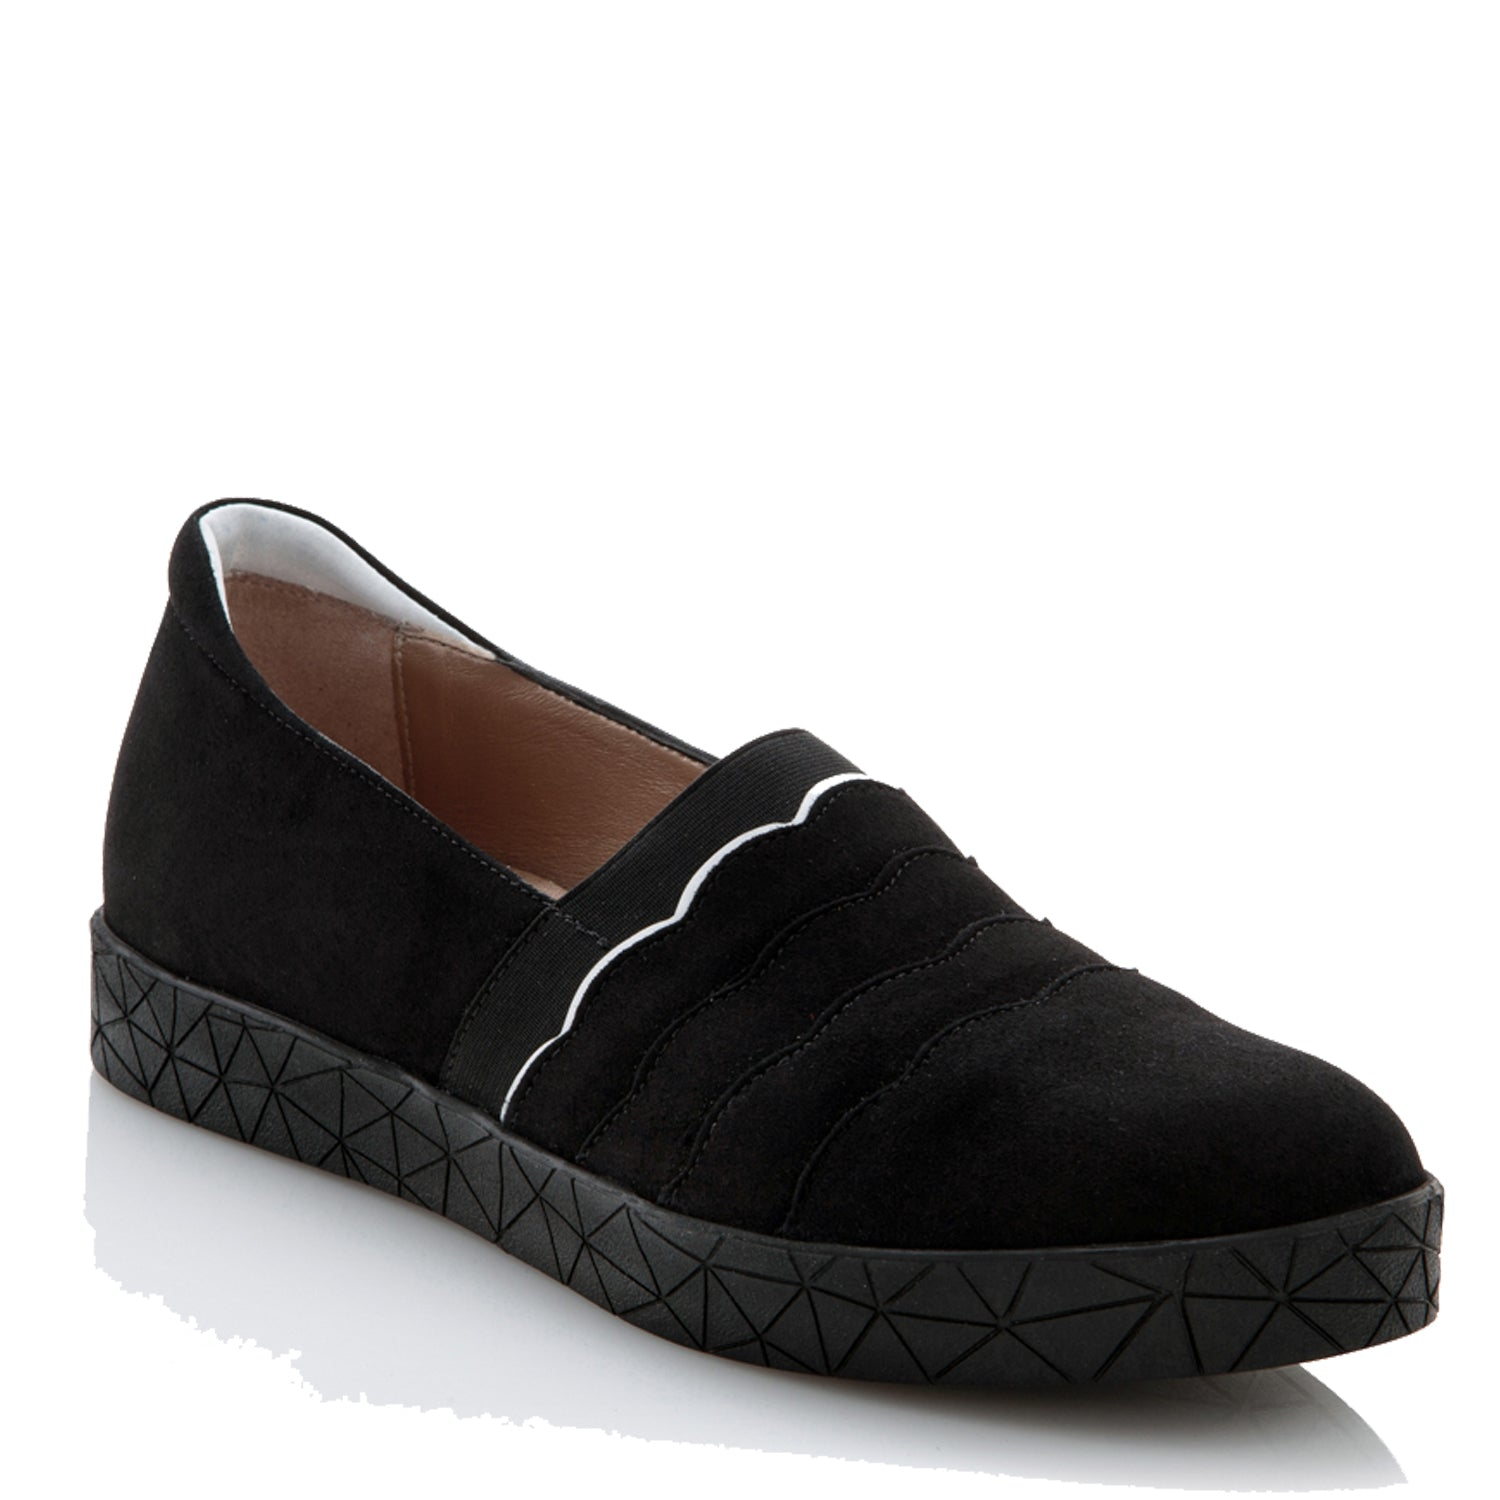 REEVE - BLACK SUEDE WHITE COMBI